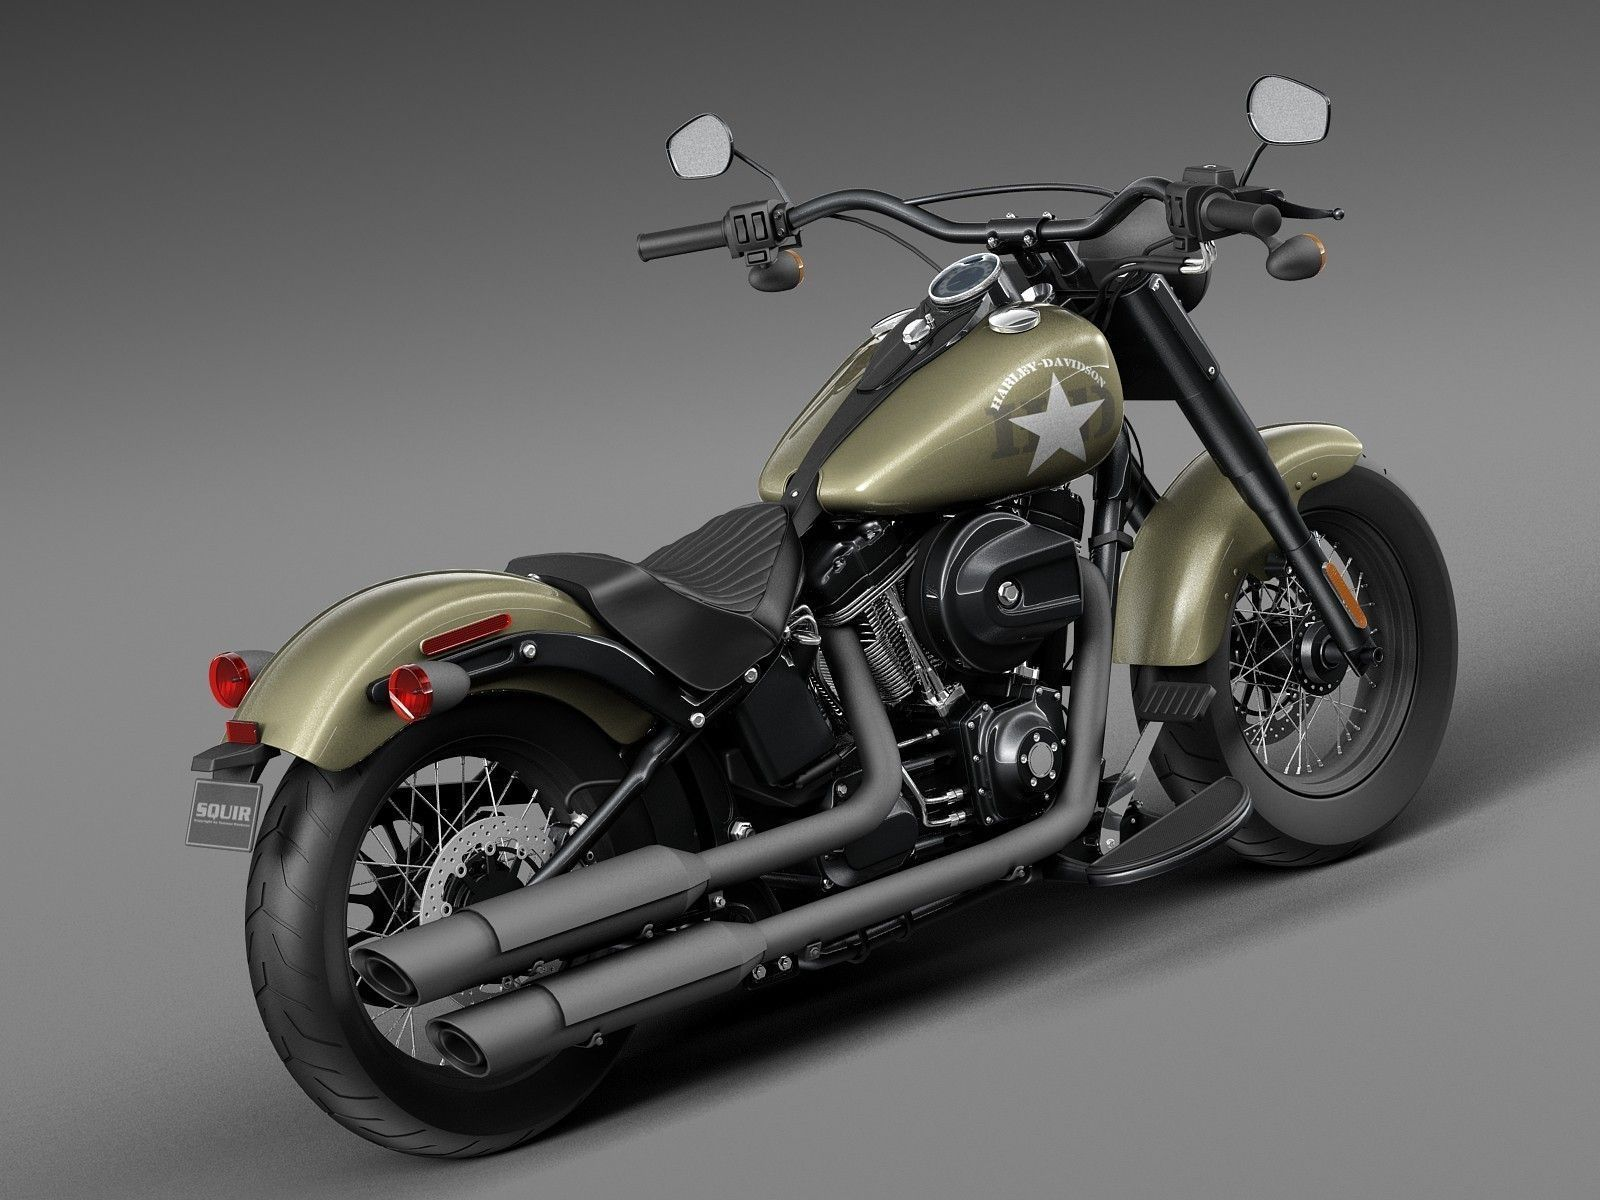 Harley Davidson Softail Slim S Army Design 3d Model